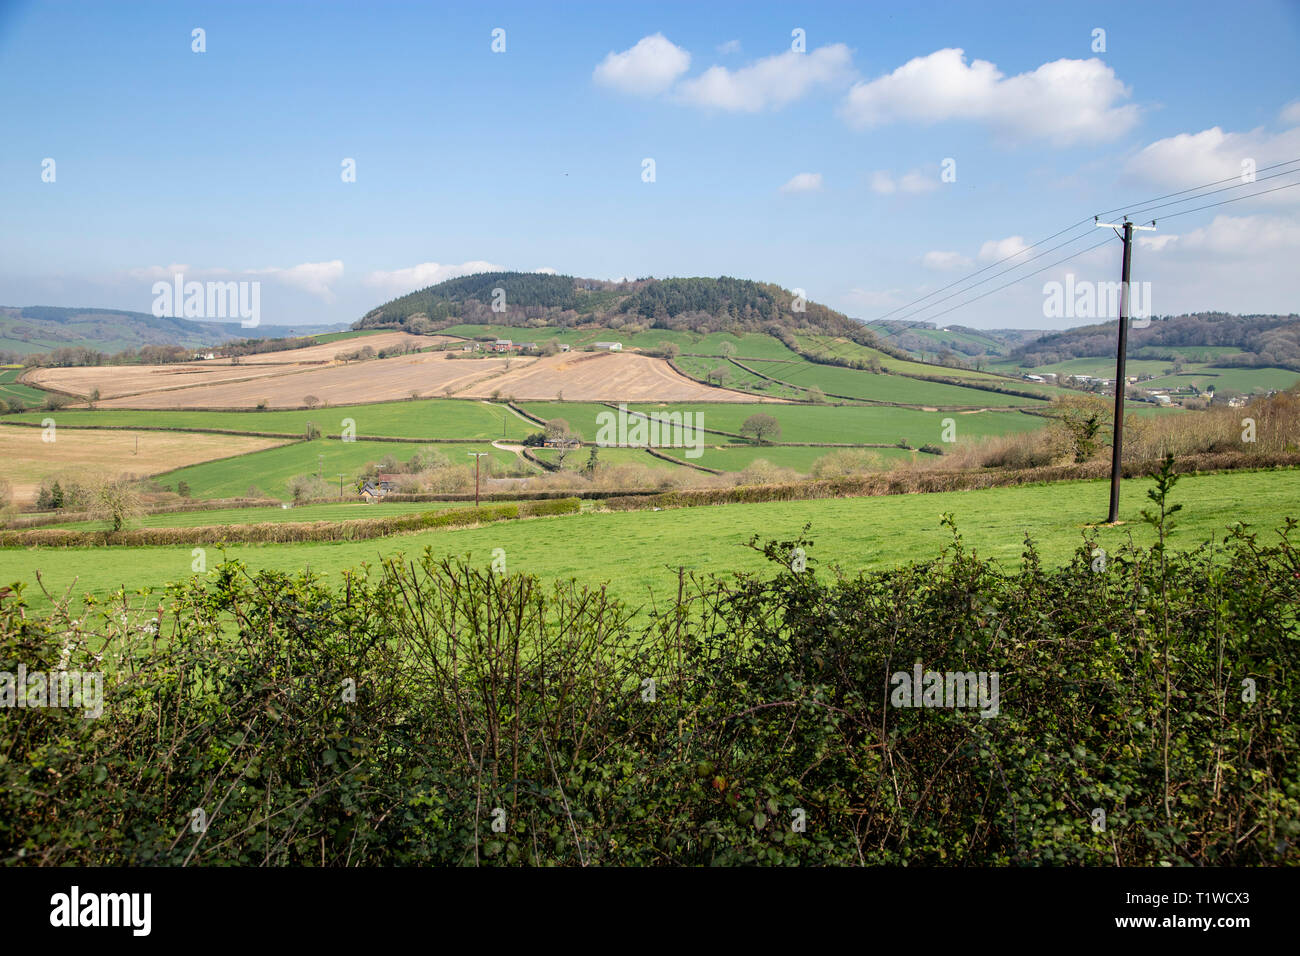 View looking across the Sid Valley, near Sidmouth, Devon, looking from Trow Hill to Buckton Hill. Stock Photo